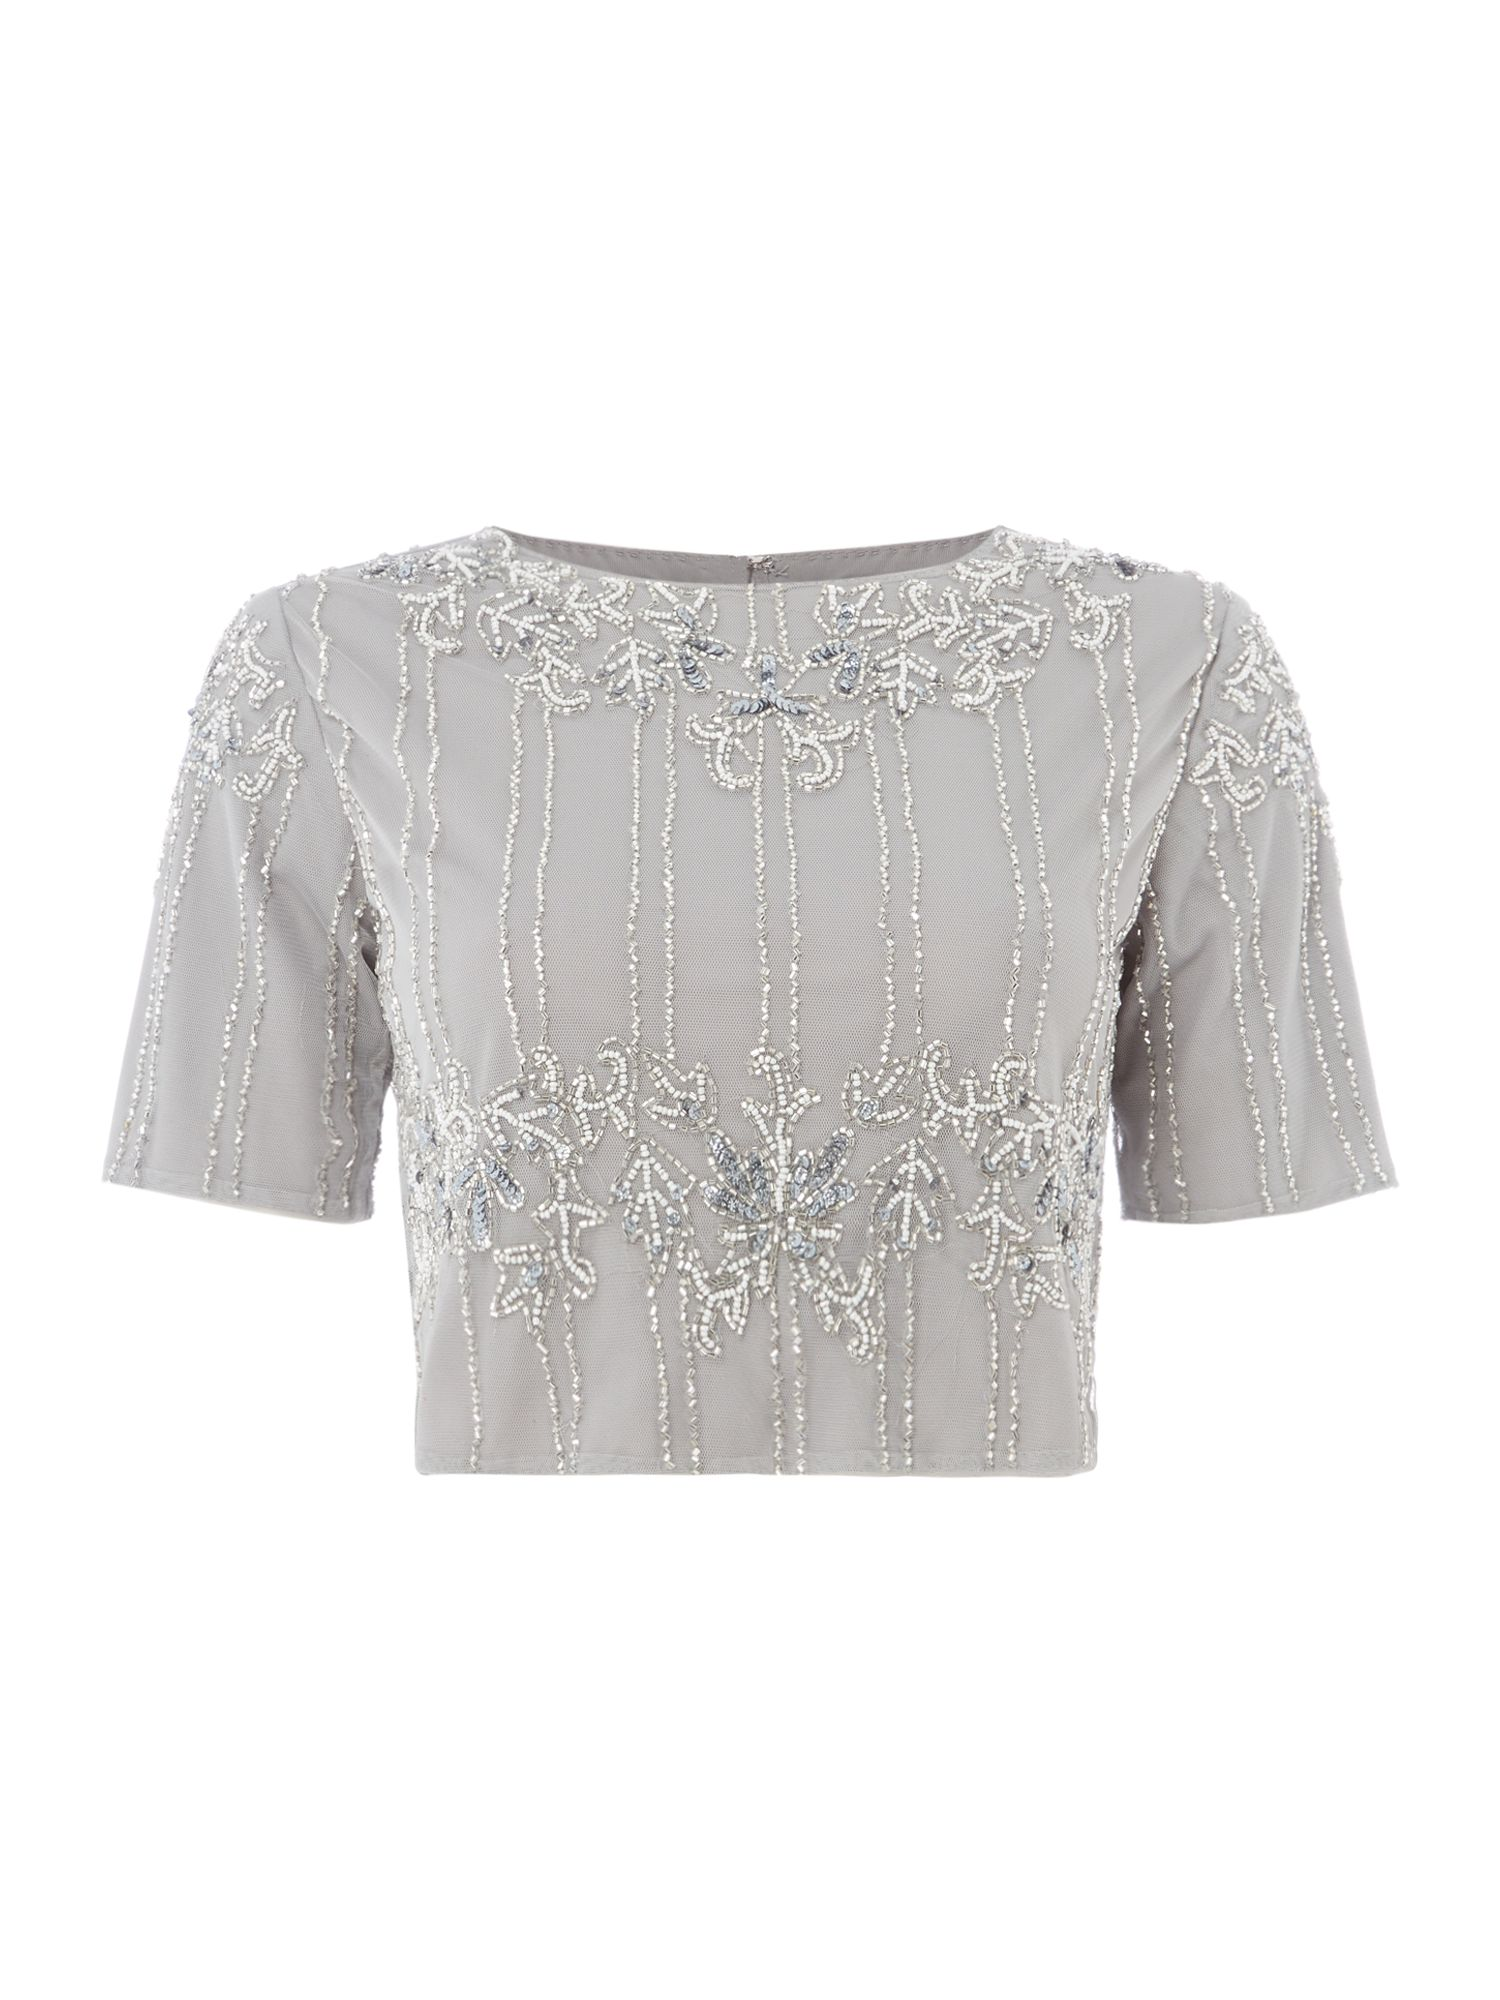 Lace and Beads TOP CAP SL EMBELLISHED CROP, Grey